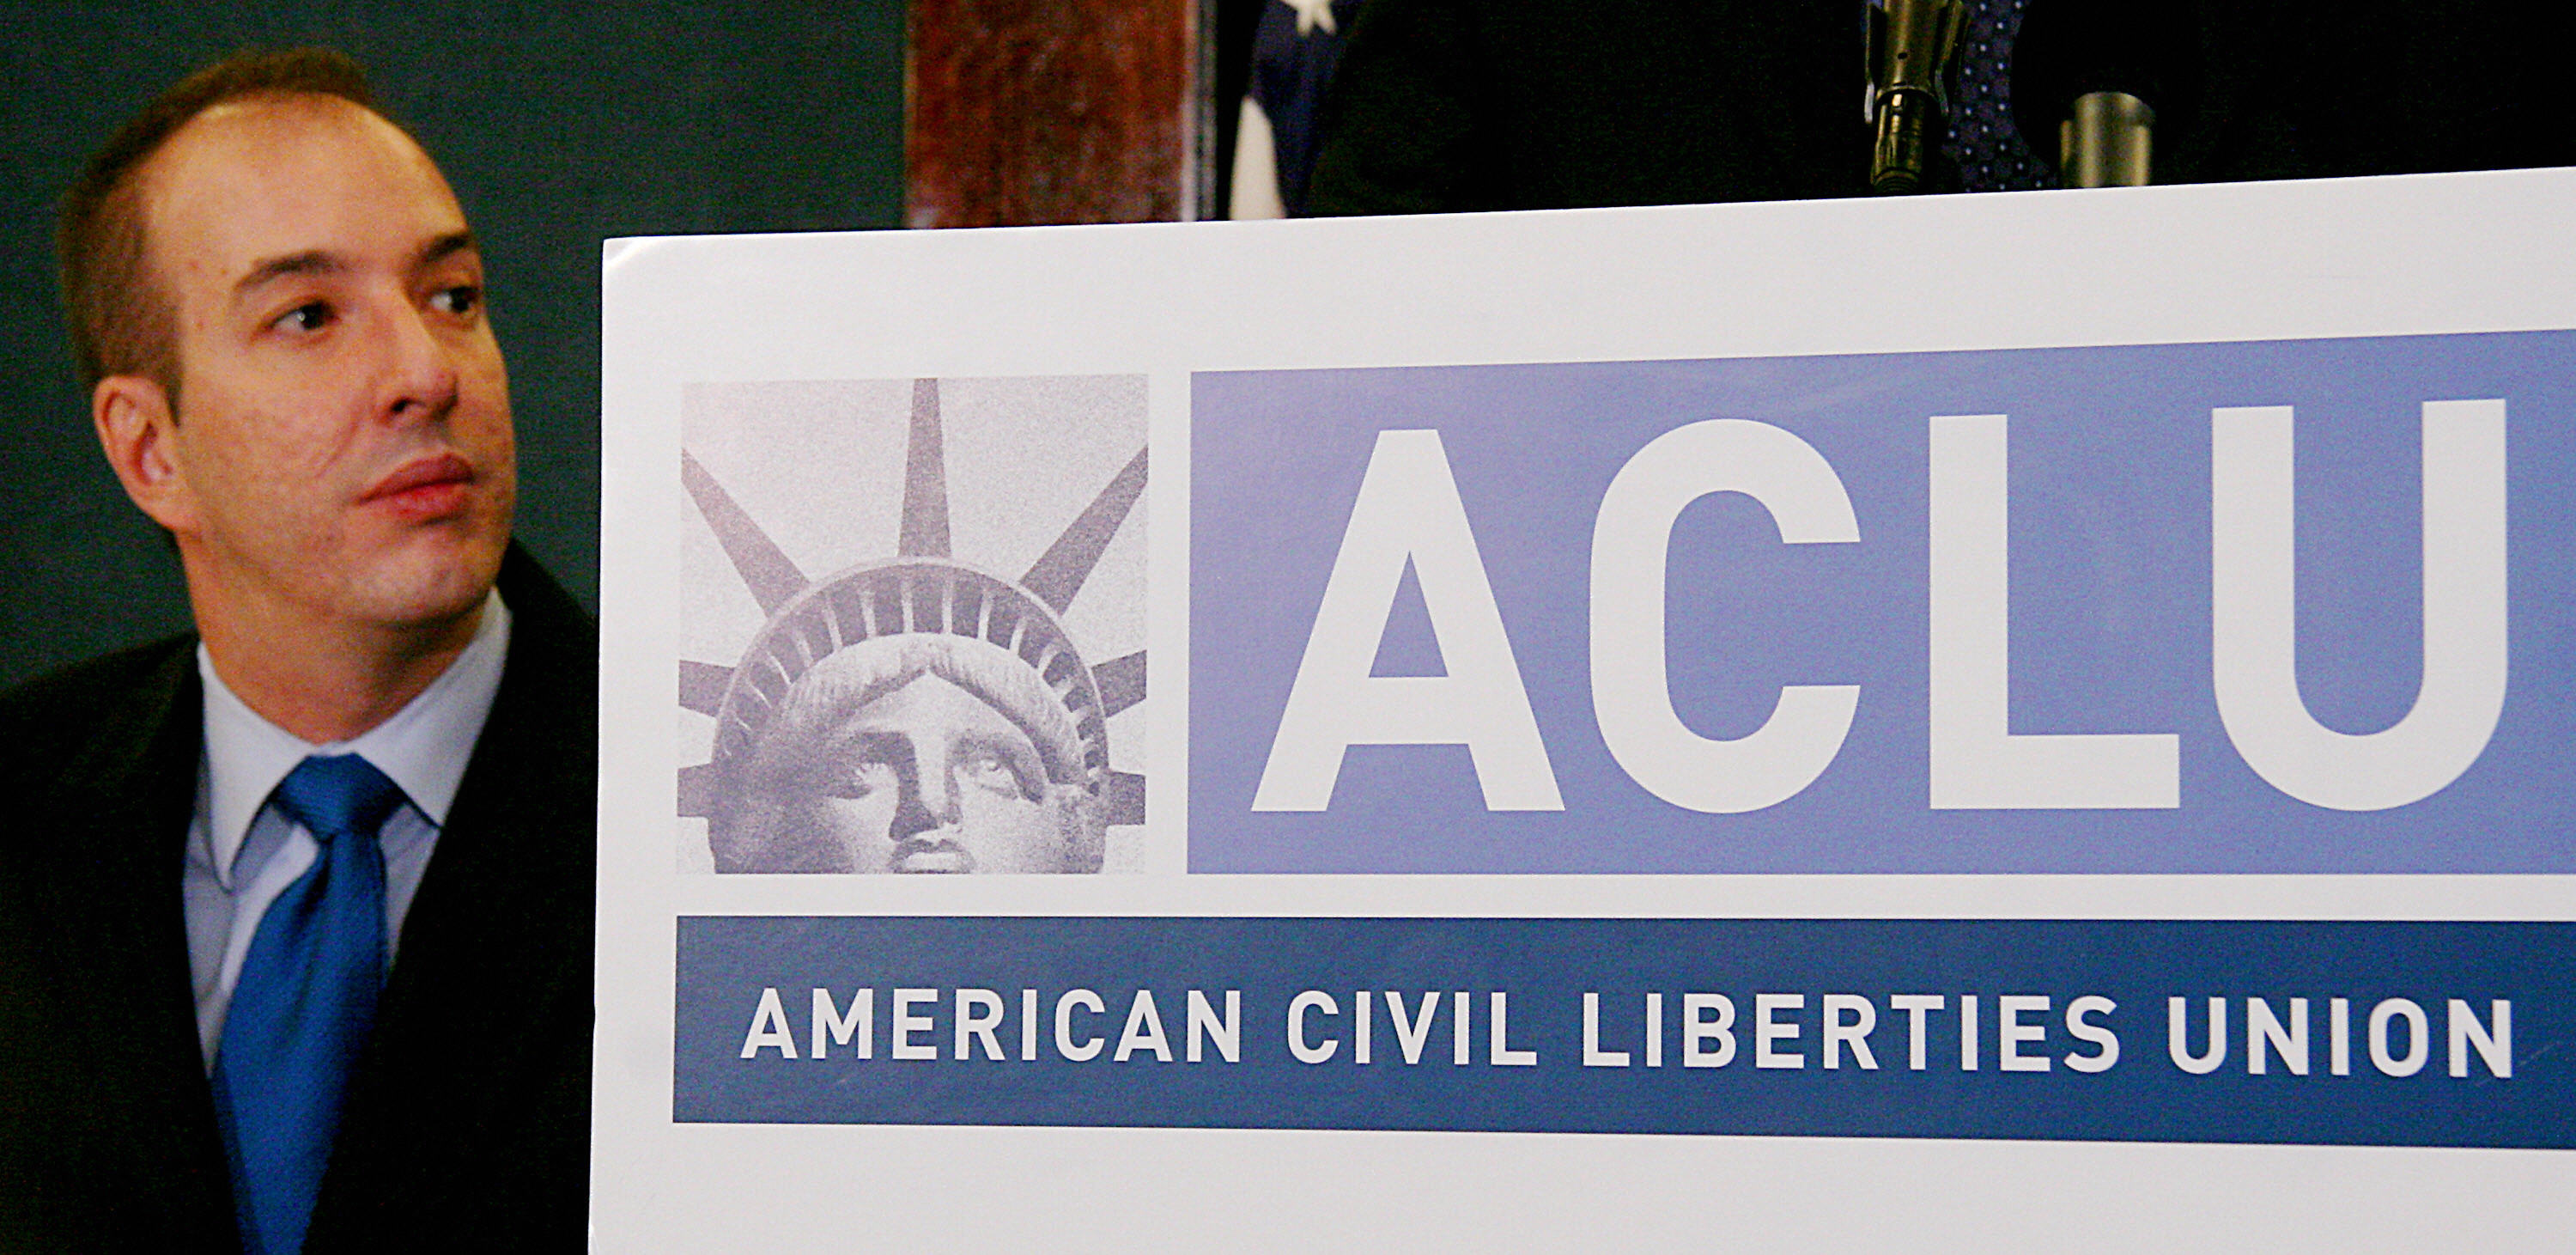 an analysis of the american civil liberties union The latest litigation news, cases and dockets involving the company american civil liberties union (.